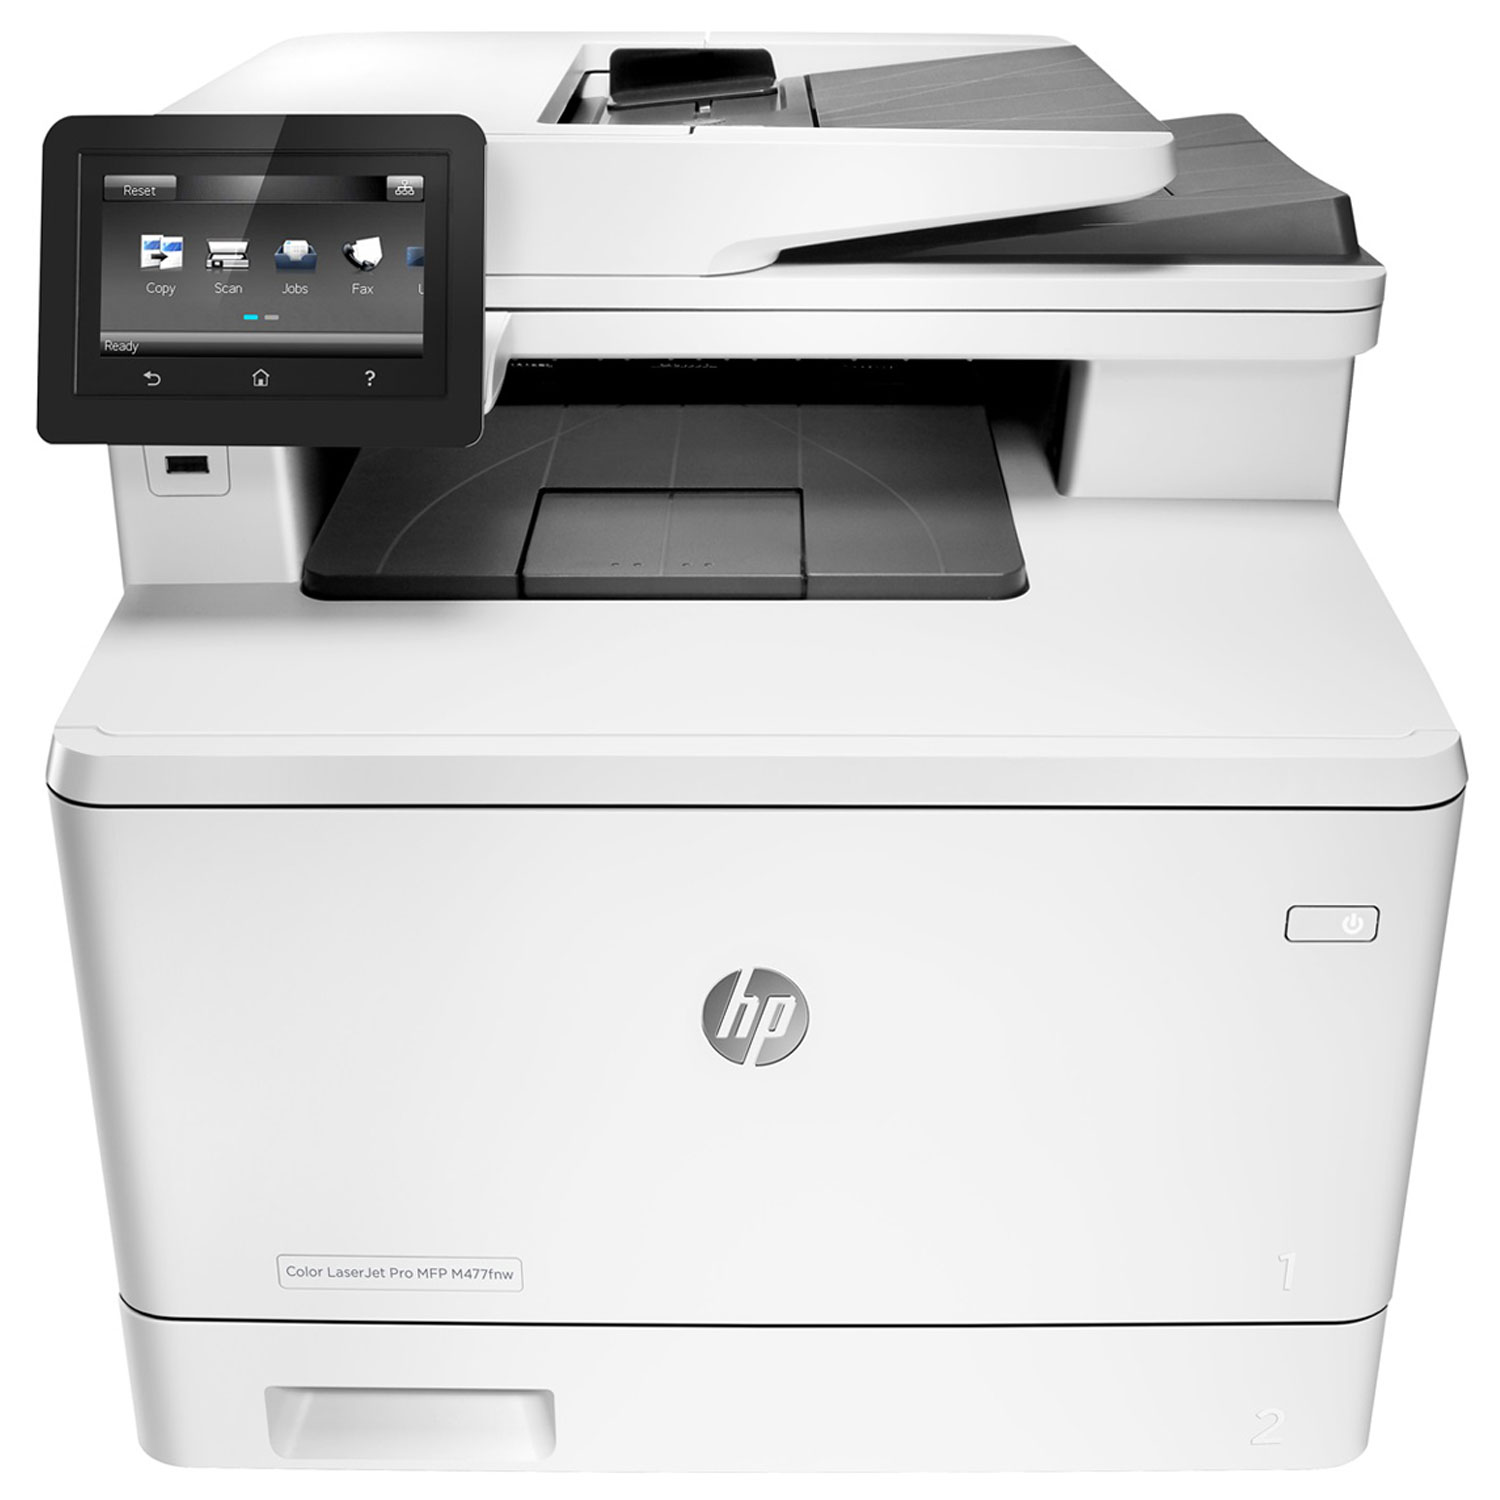 hp color laserjet pro mfp m477fnw imprimante multifonction hp sur ldlc. Black Bedroom Furniture Sets. Home Design Ideas